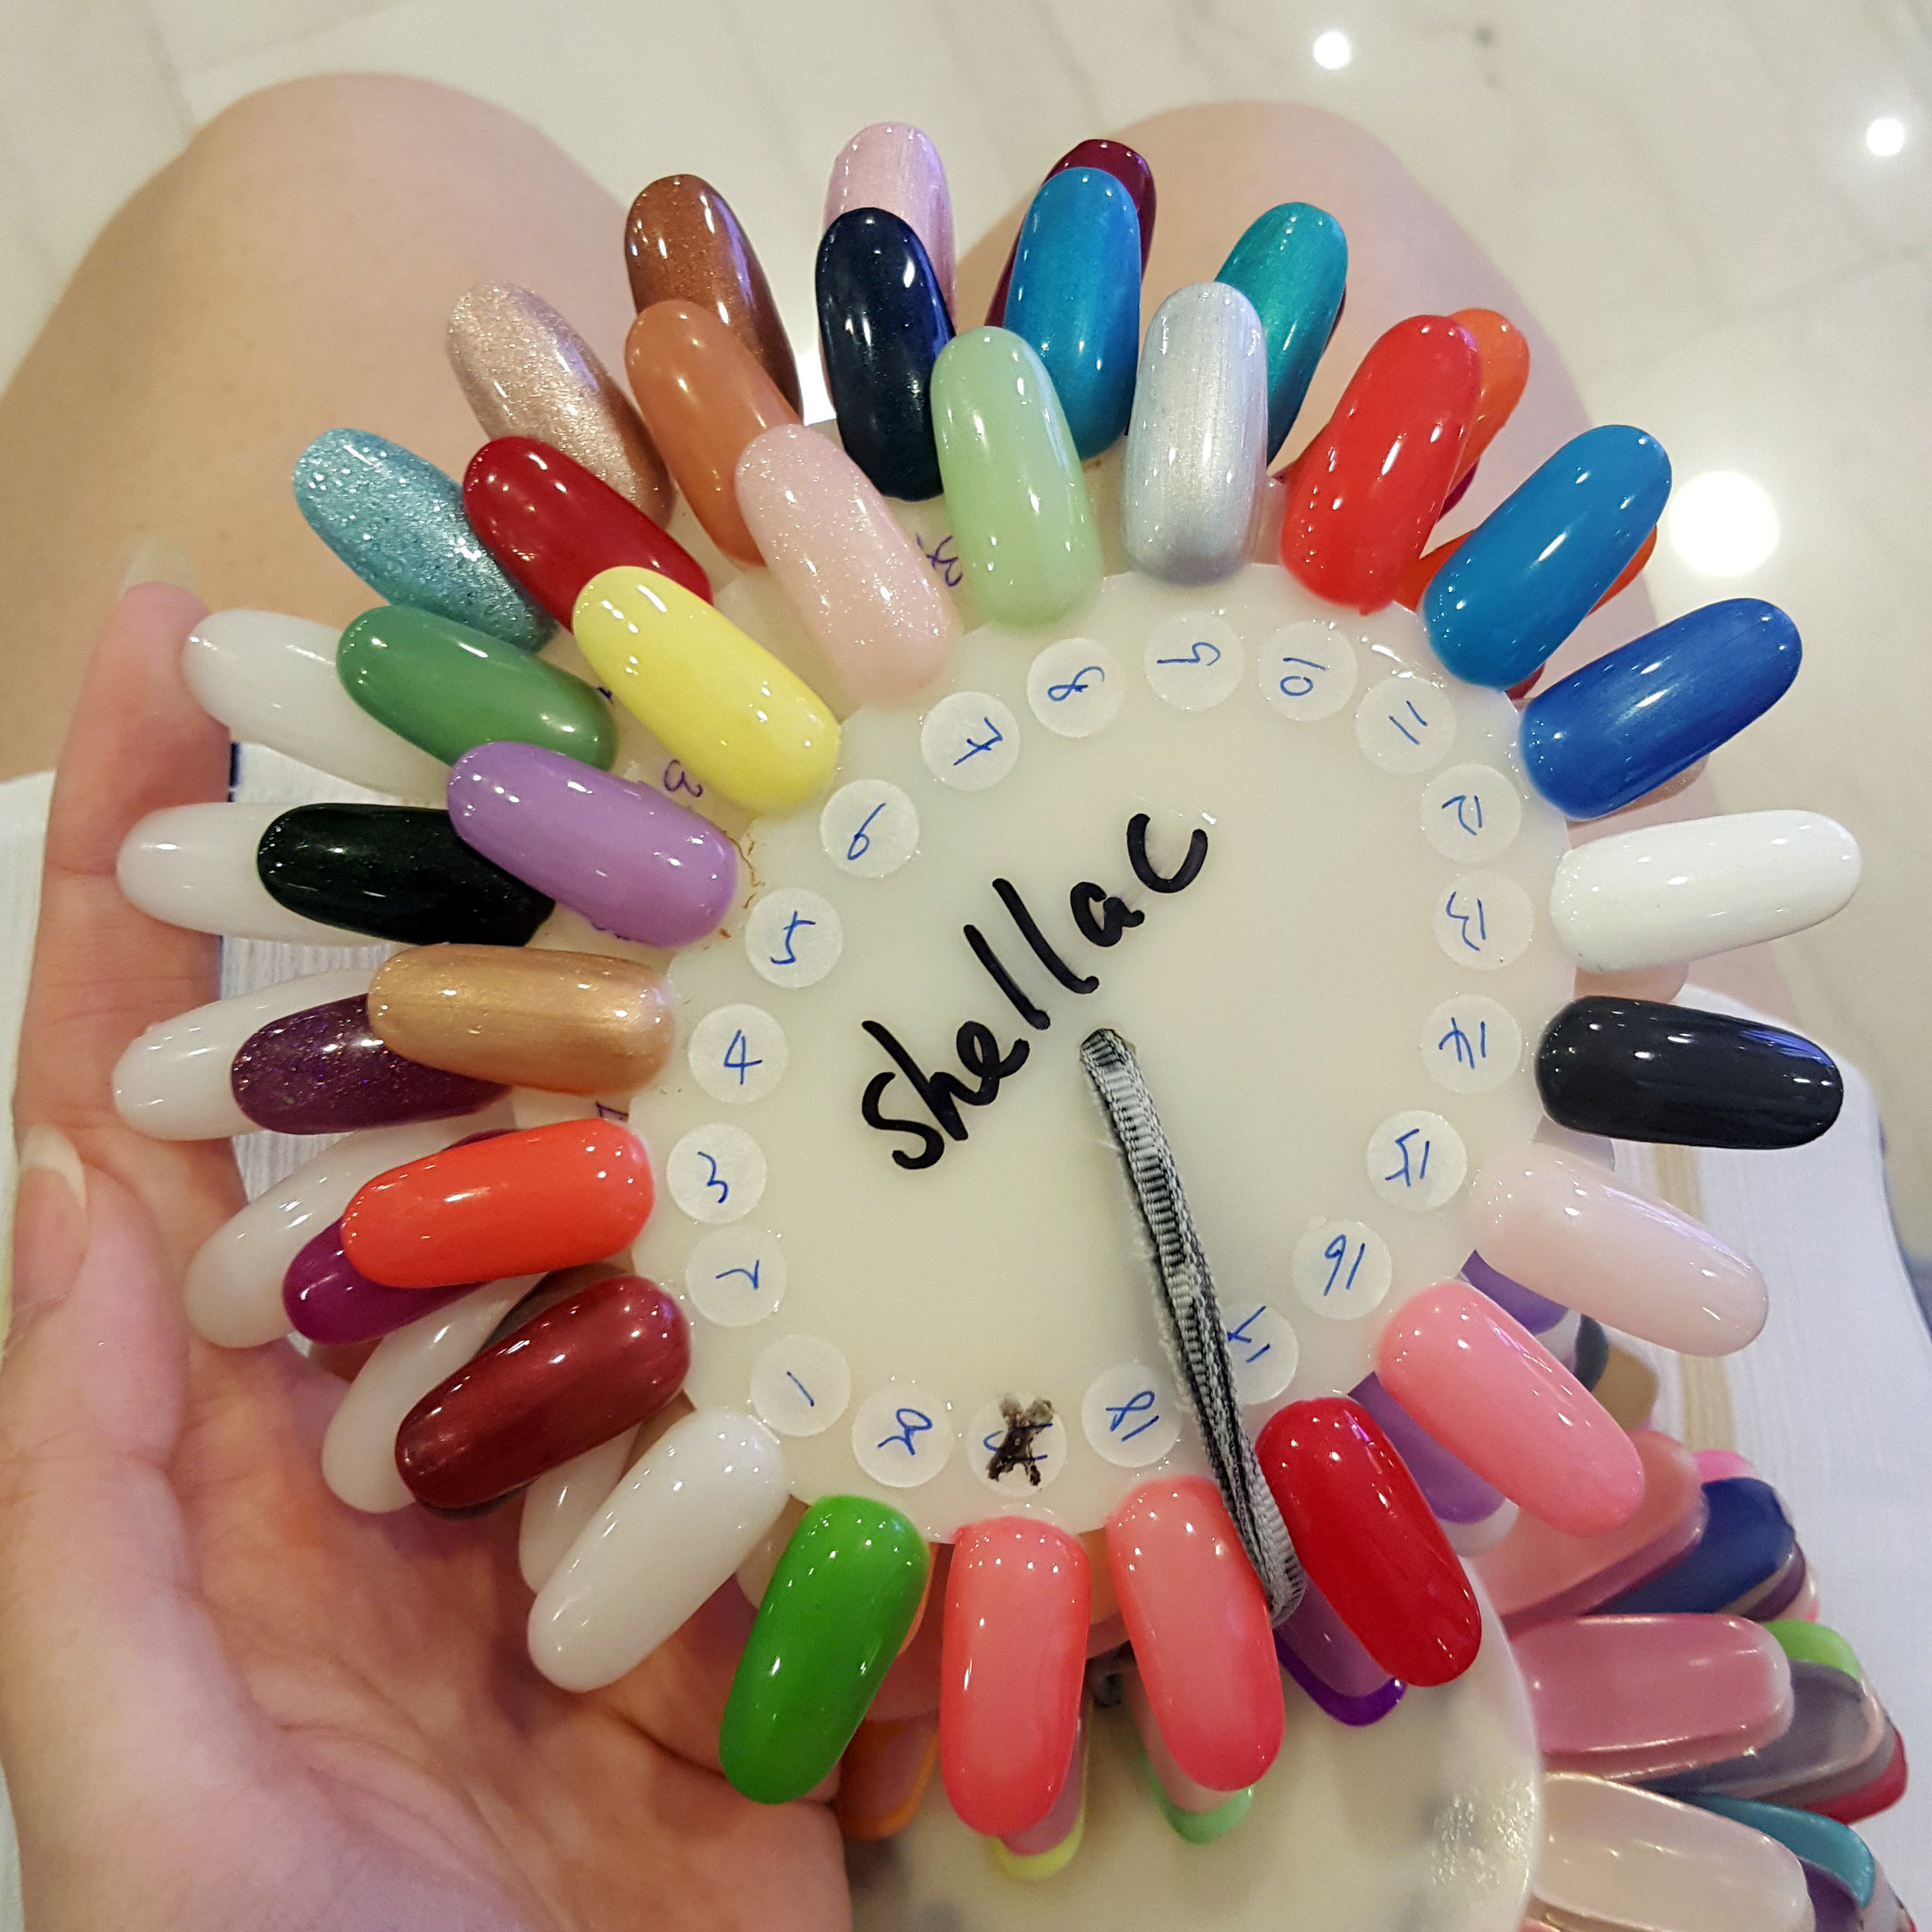 M Spa carries an array of colours of Shellac nail polish